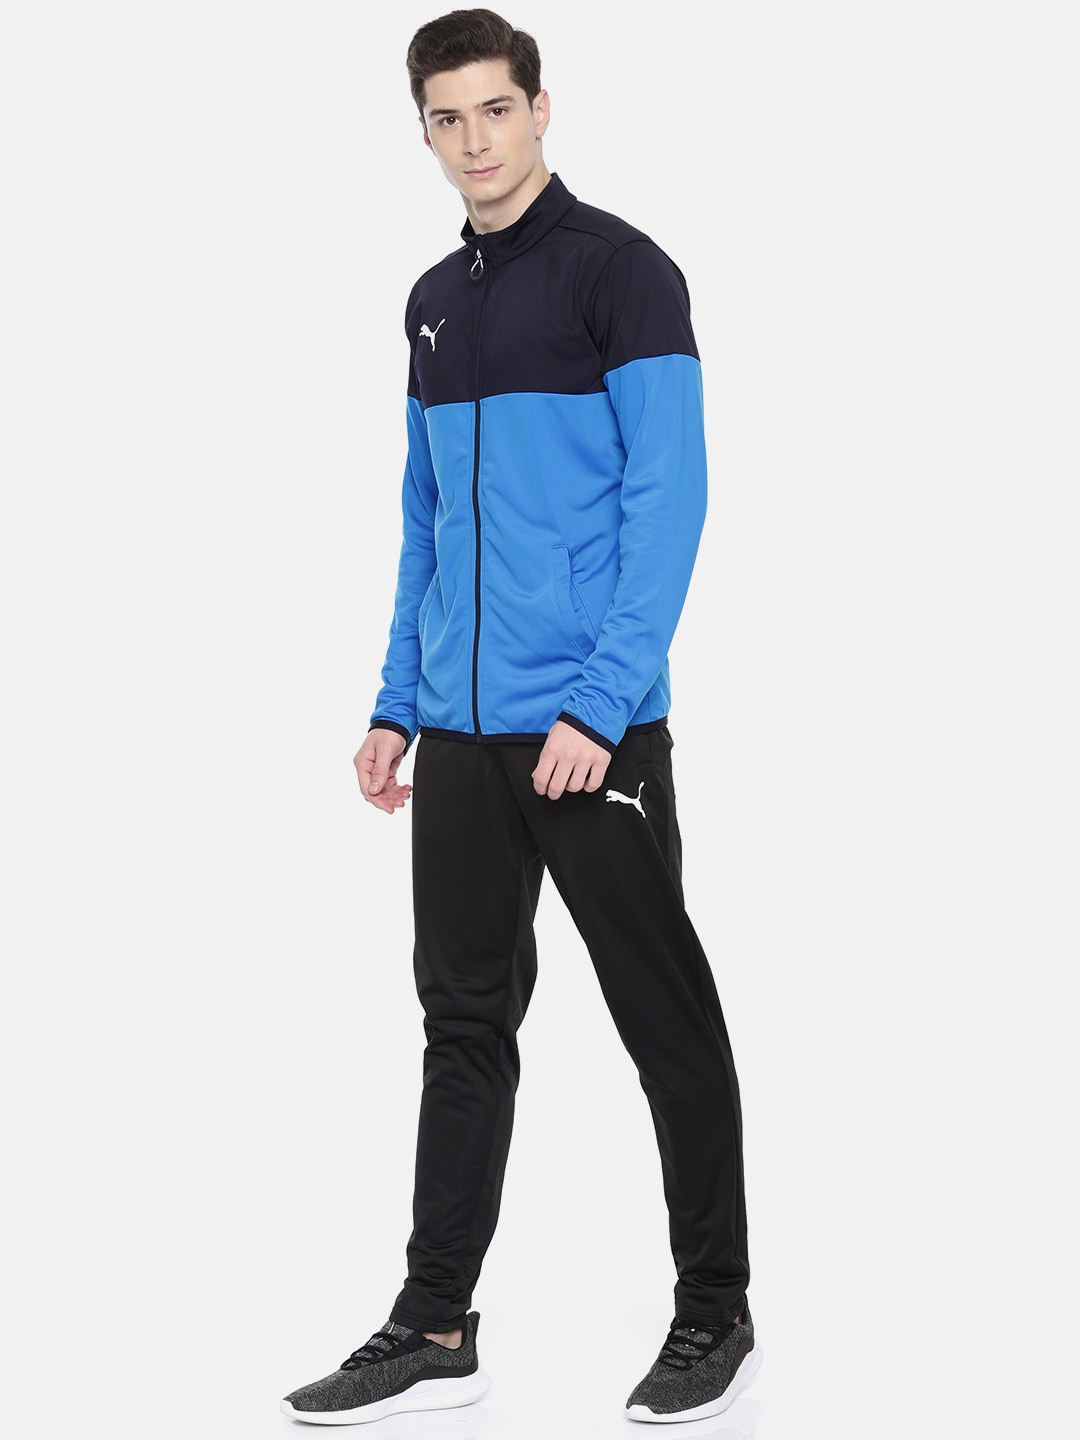 91717f76625f Puma Headband Tracksuits Tops - Buy Puma Headband Tracksuits Tops online in  India